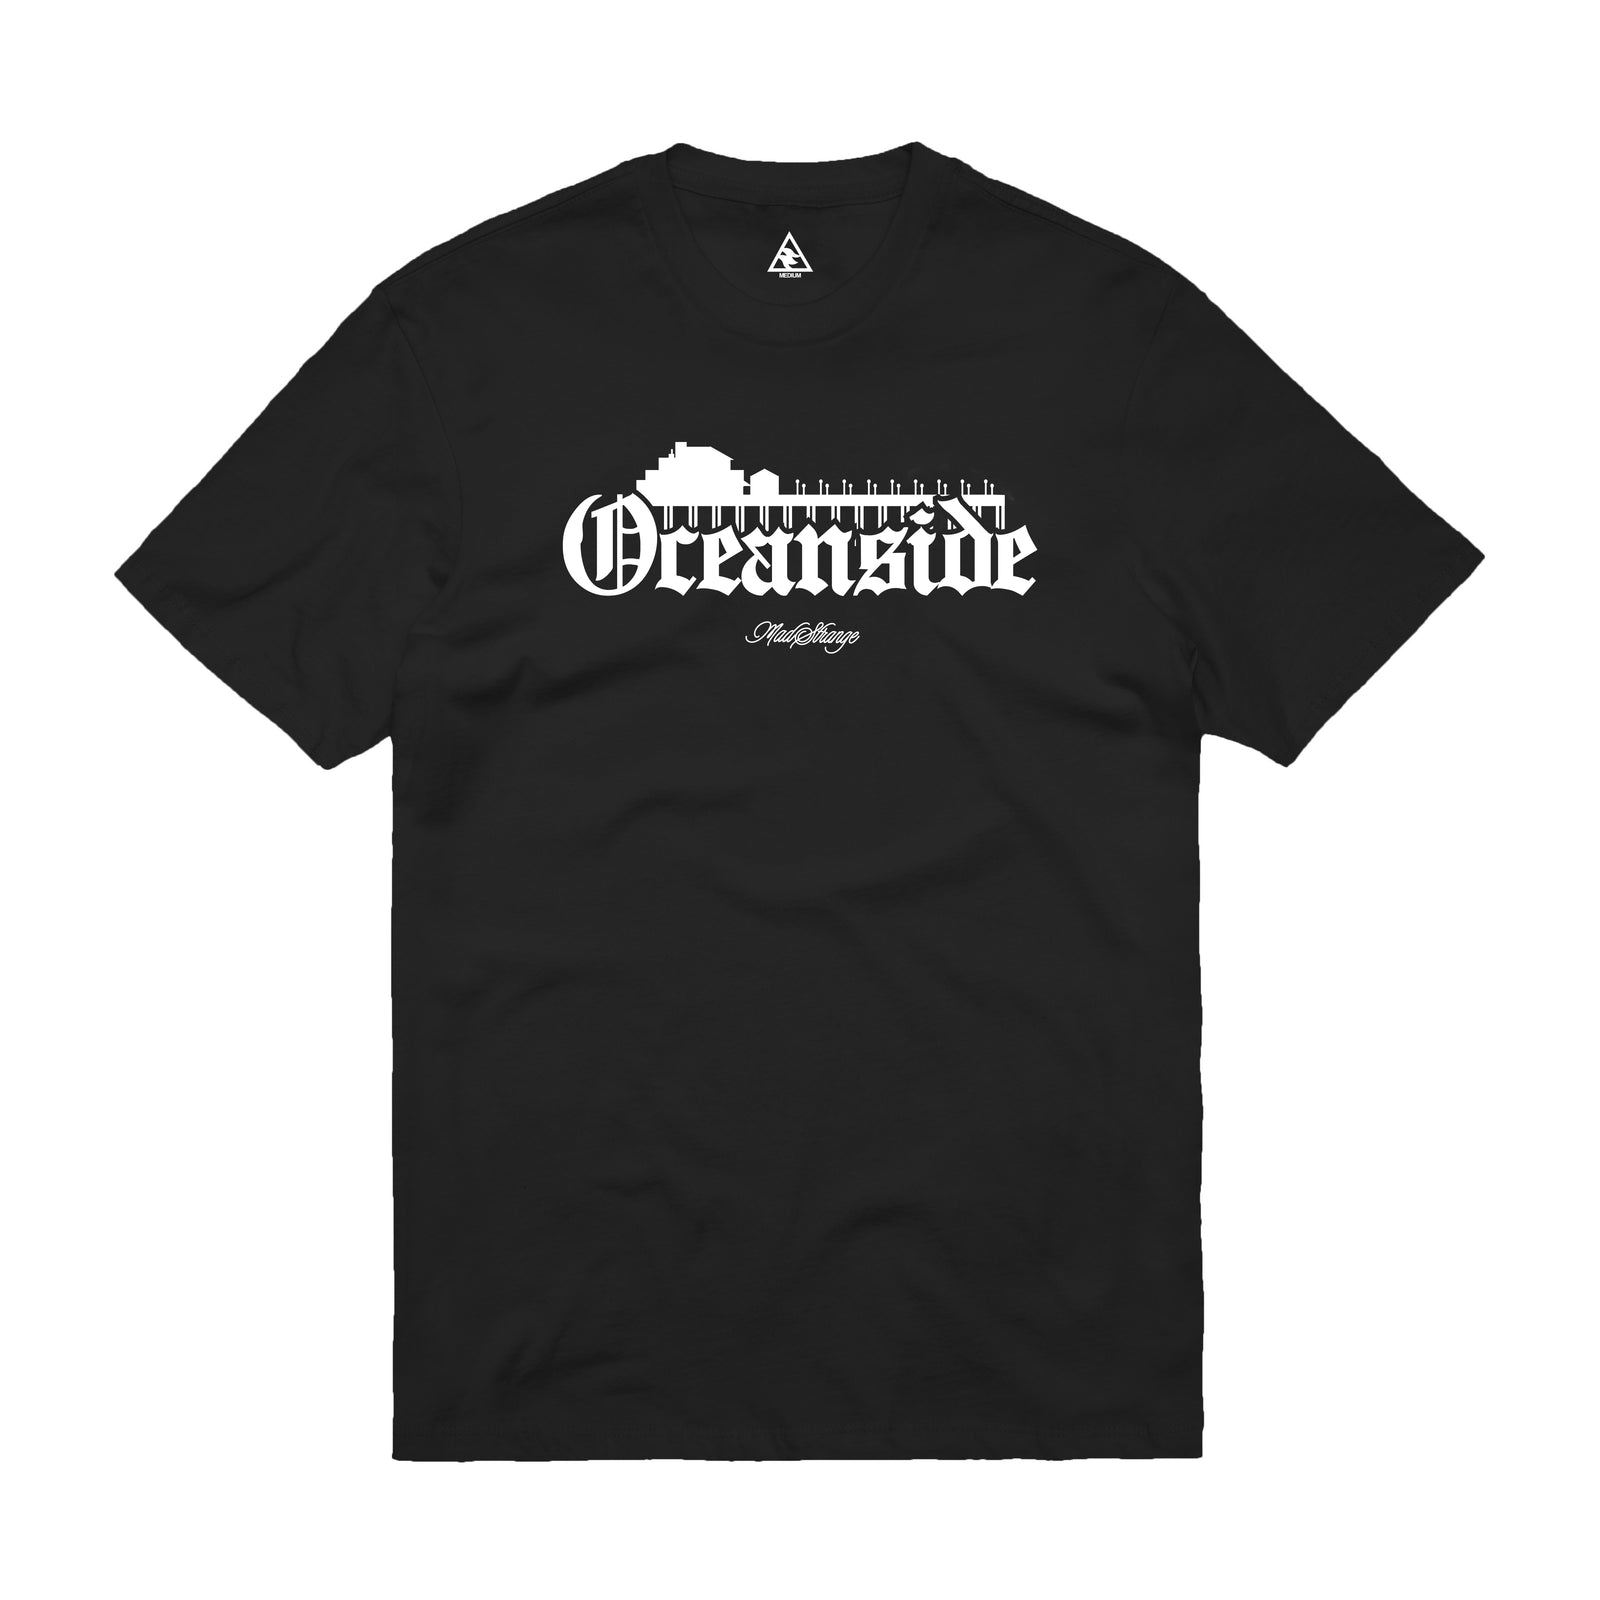 Oe Pier T-Shirt (Black)